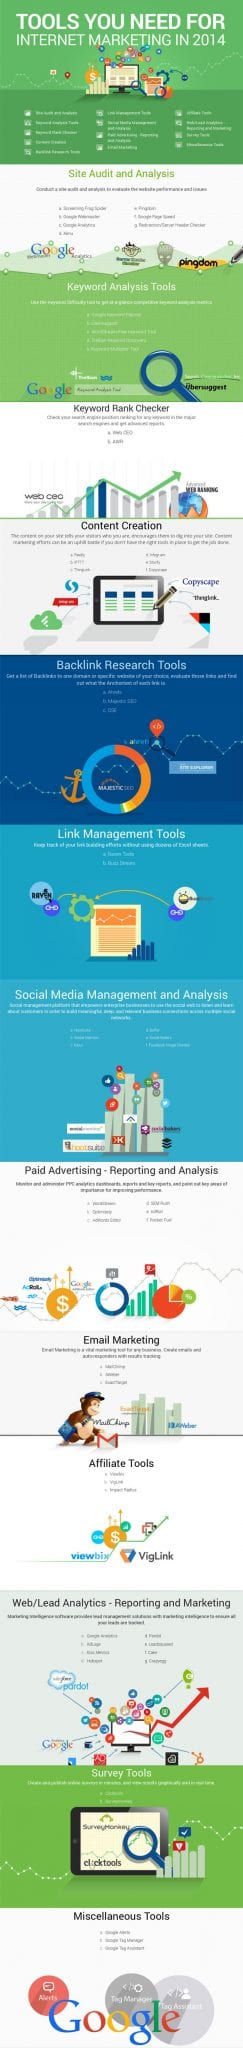 , The MUST HAVE Tools of an Internet Marketer in 2014